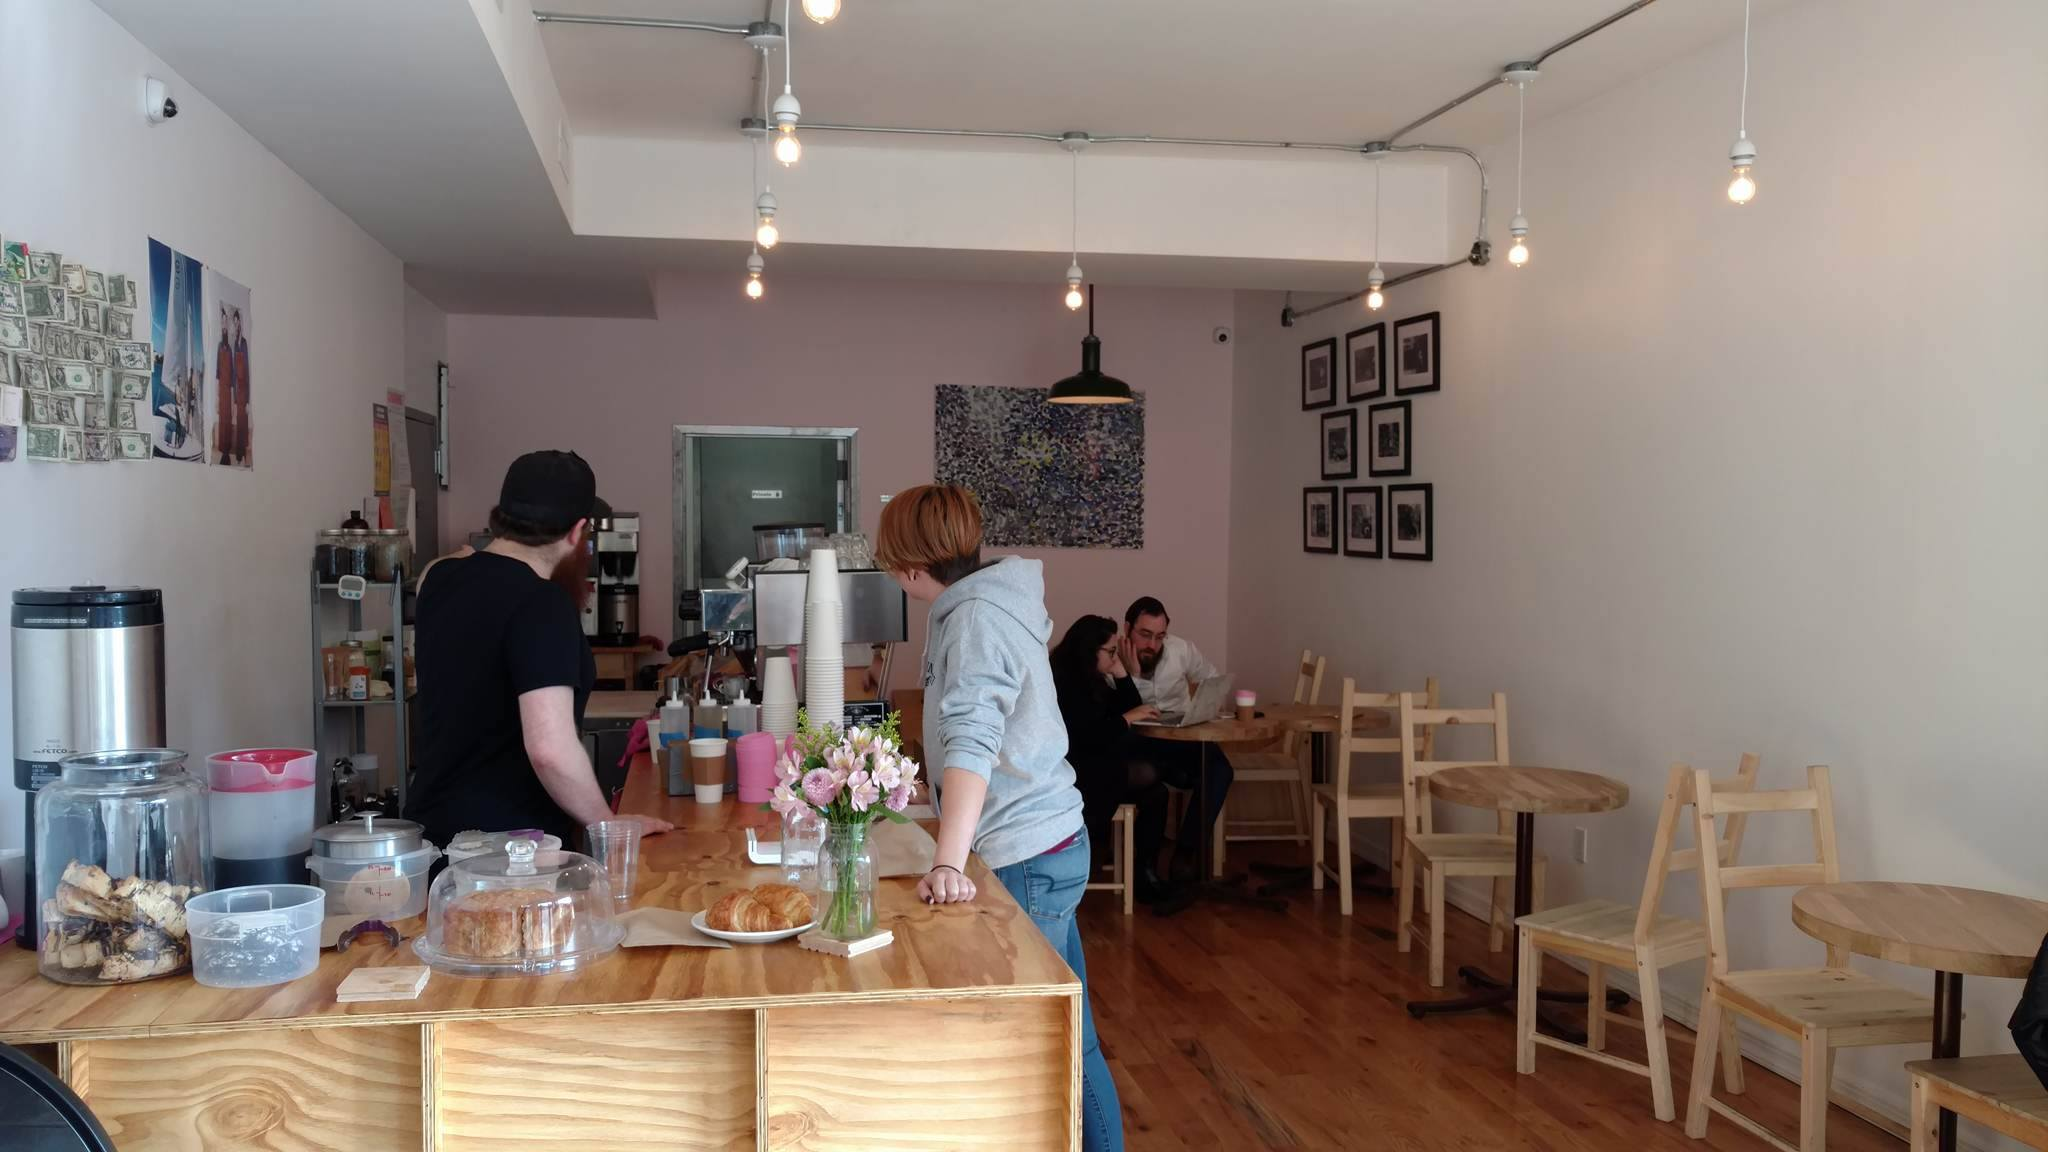 new kosher cafe now open in brooklyn: dean street cafe